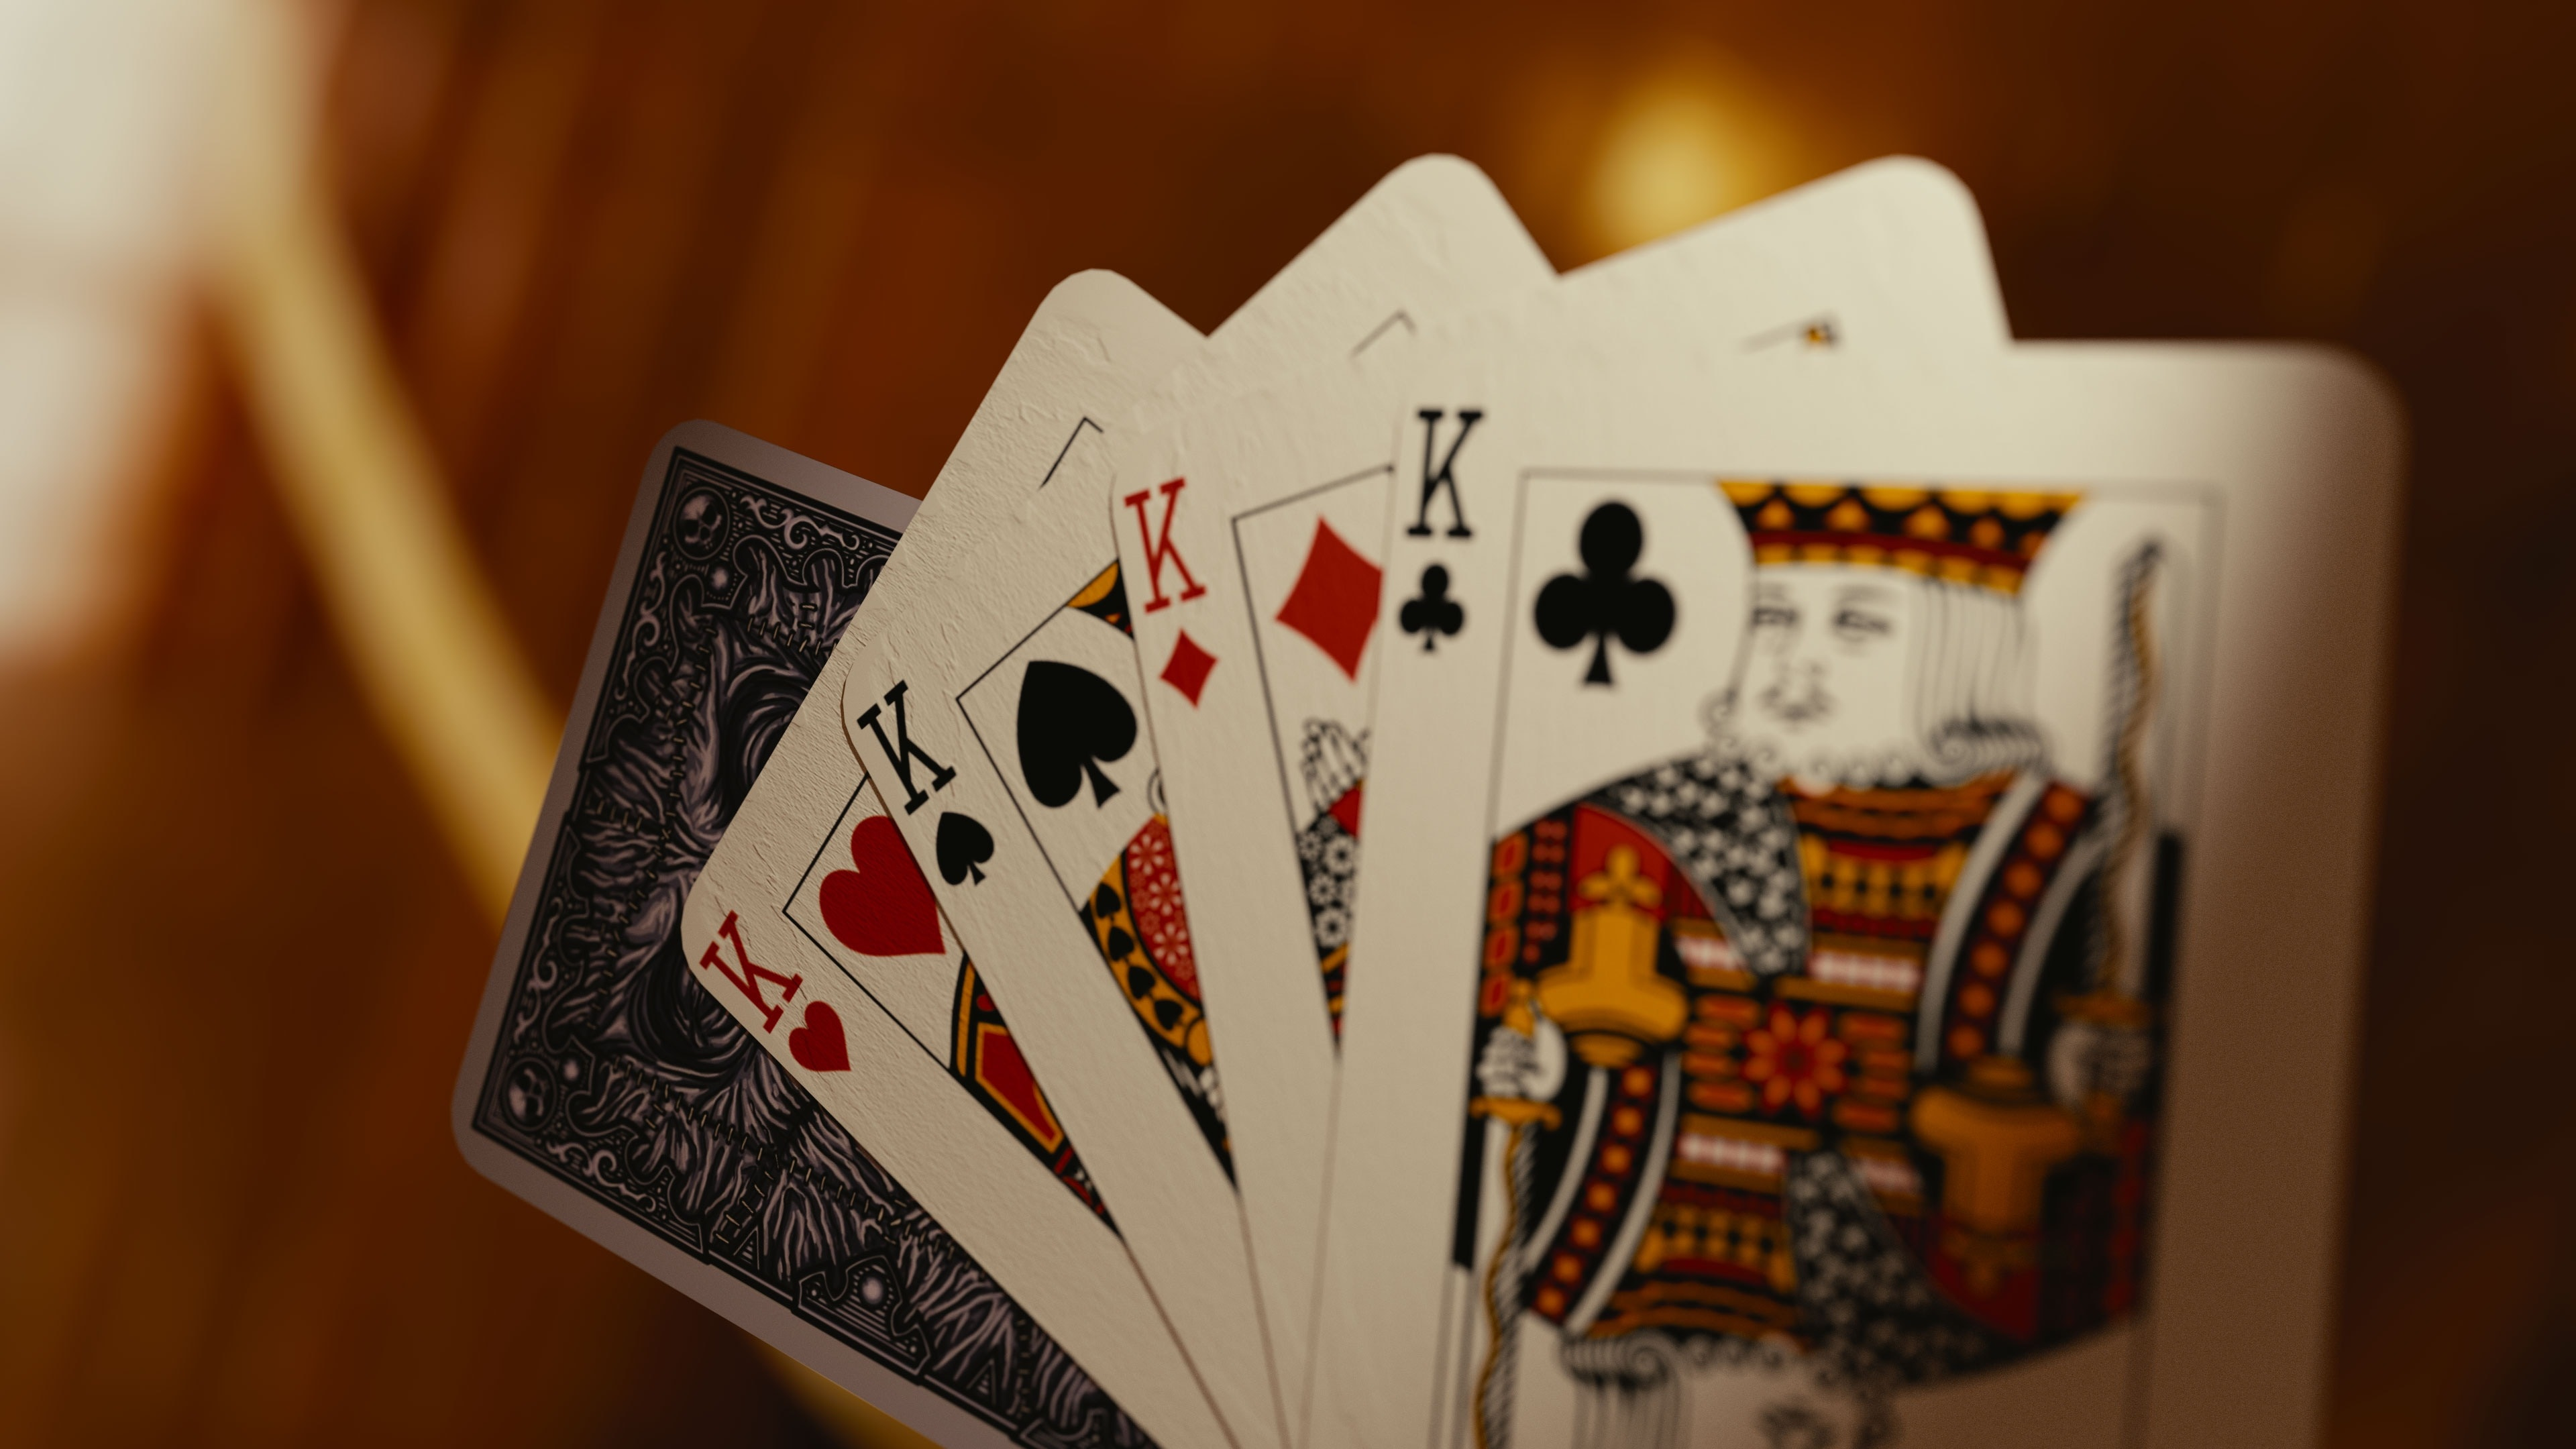 4 Kings Playing Cards Cards Play 3840x2160 Download Hd Wallpaper Wallpapertip